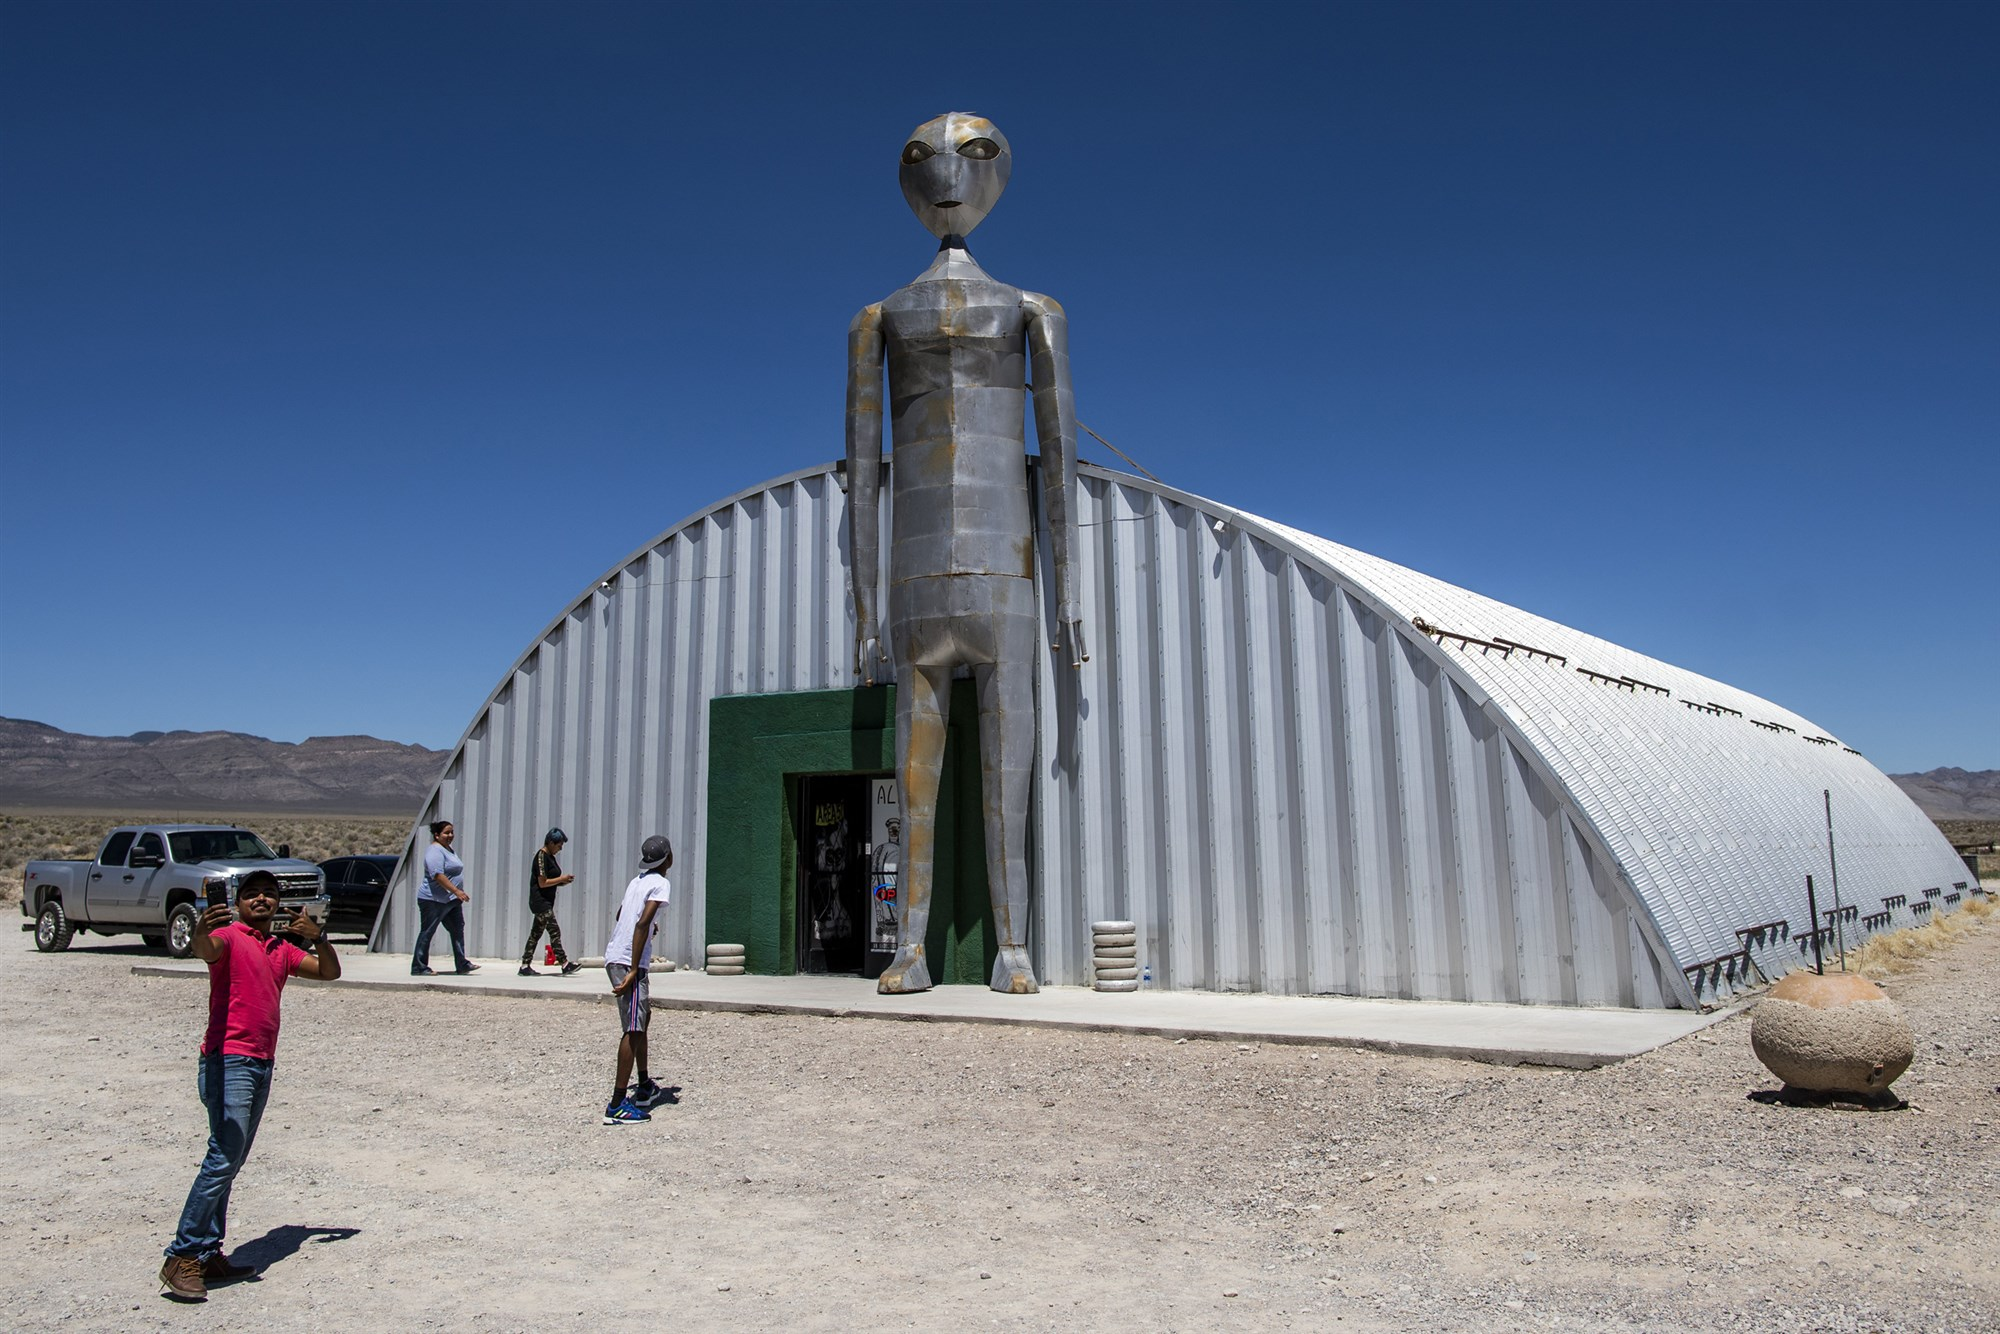 Communities Near Area 51 Plan for Influx of UFO Tourists